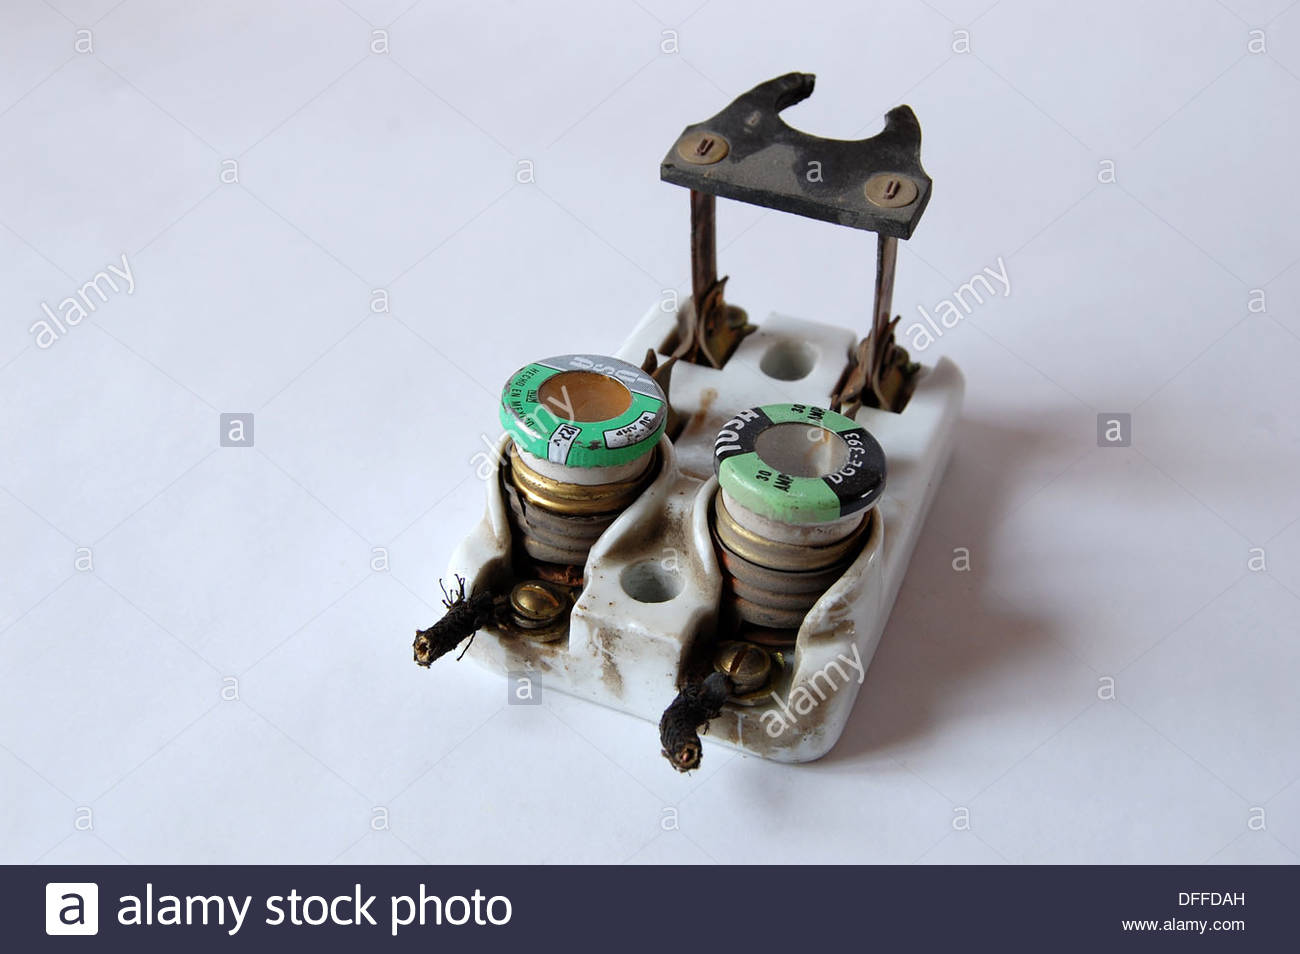 1950s vintage ceramic fuse box electrical circuit breaker with fuses DFFDAH 1950s vintage ceramic fuse box electrical circuit breaker with fuse box and circuit breaker at readyjetset.co